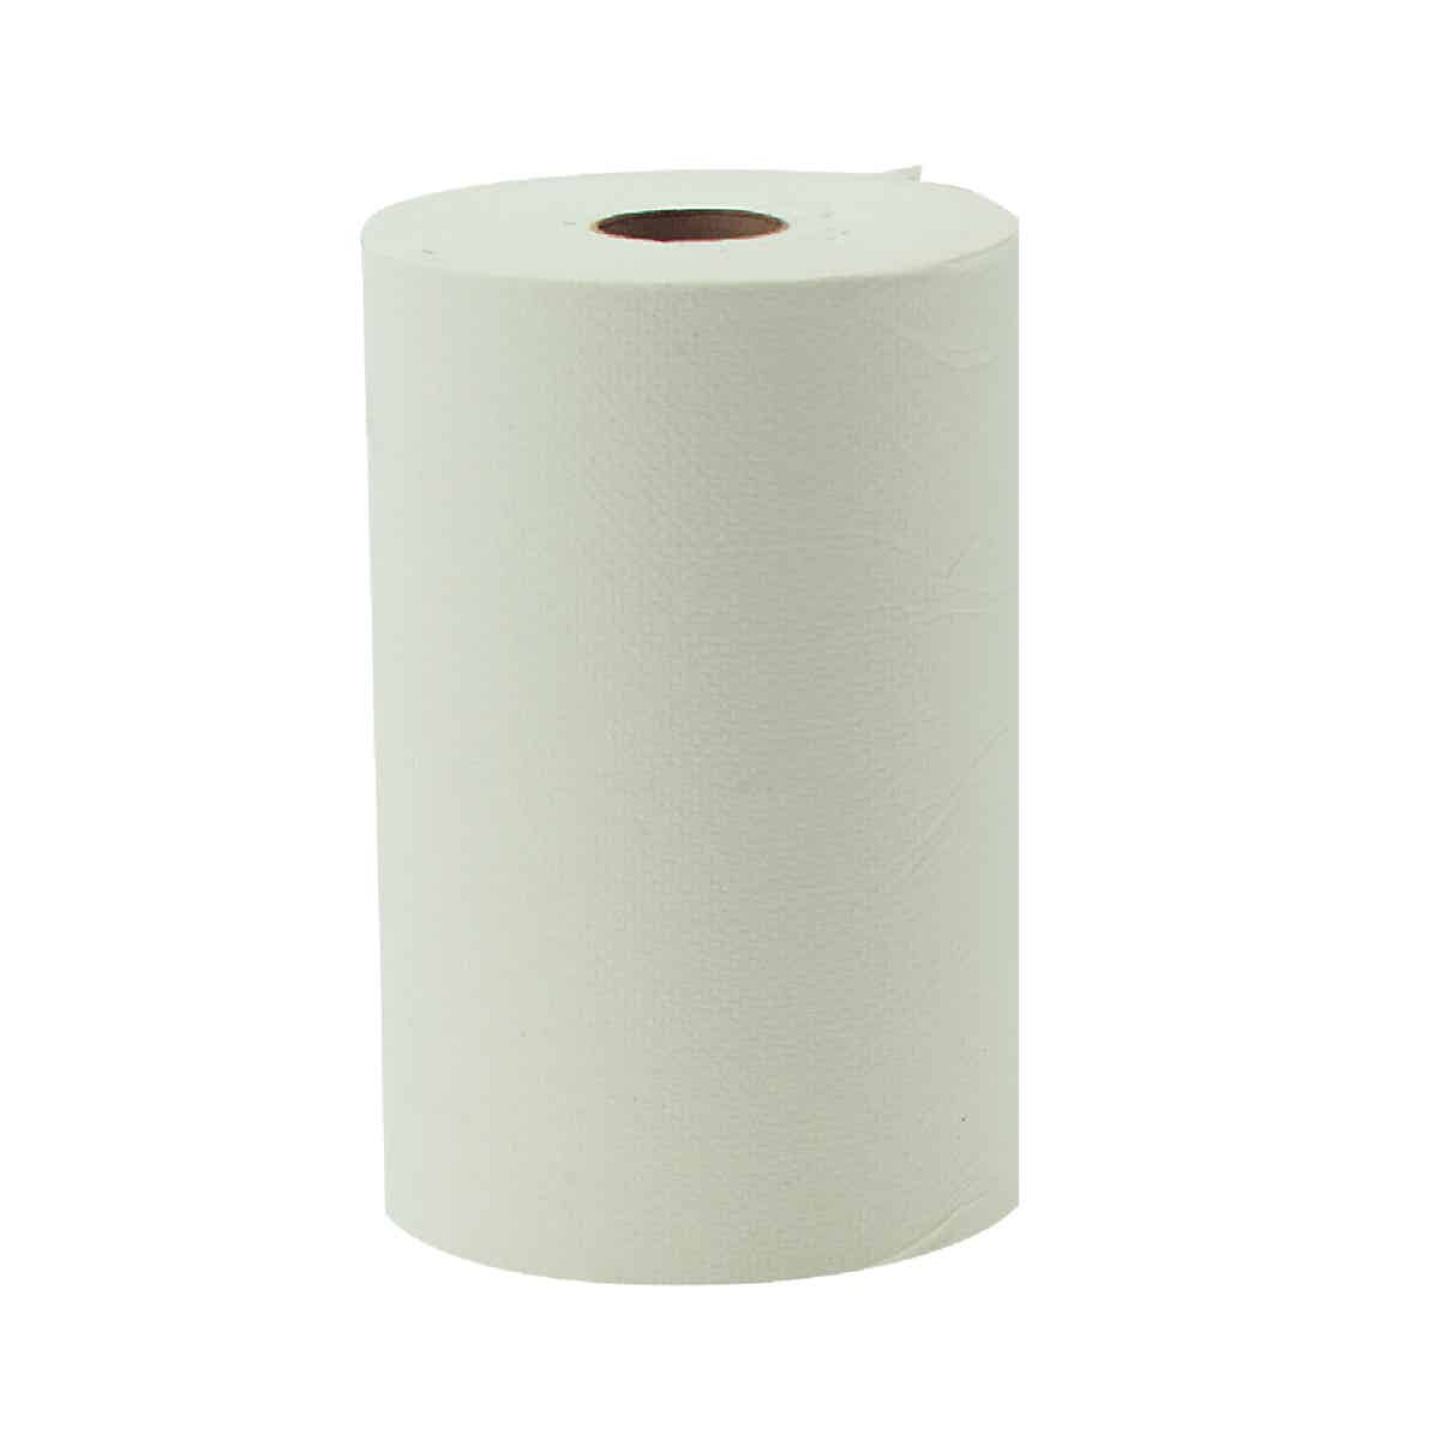 Kimberly Clark Scott Essential White Hard Roll Towel (12 Count) Image 1